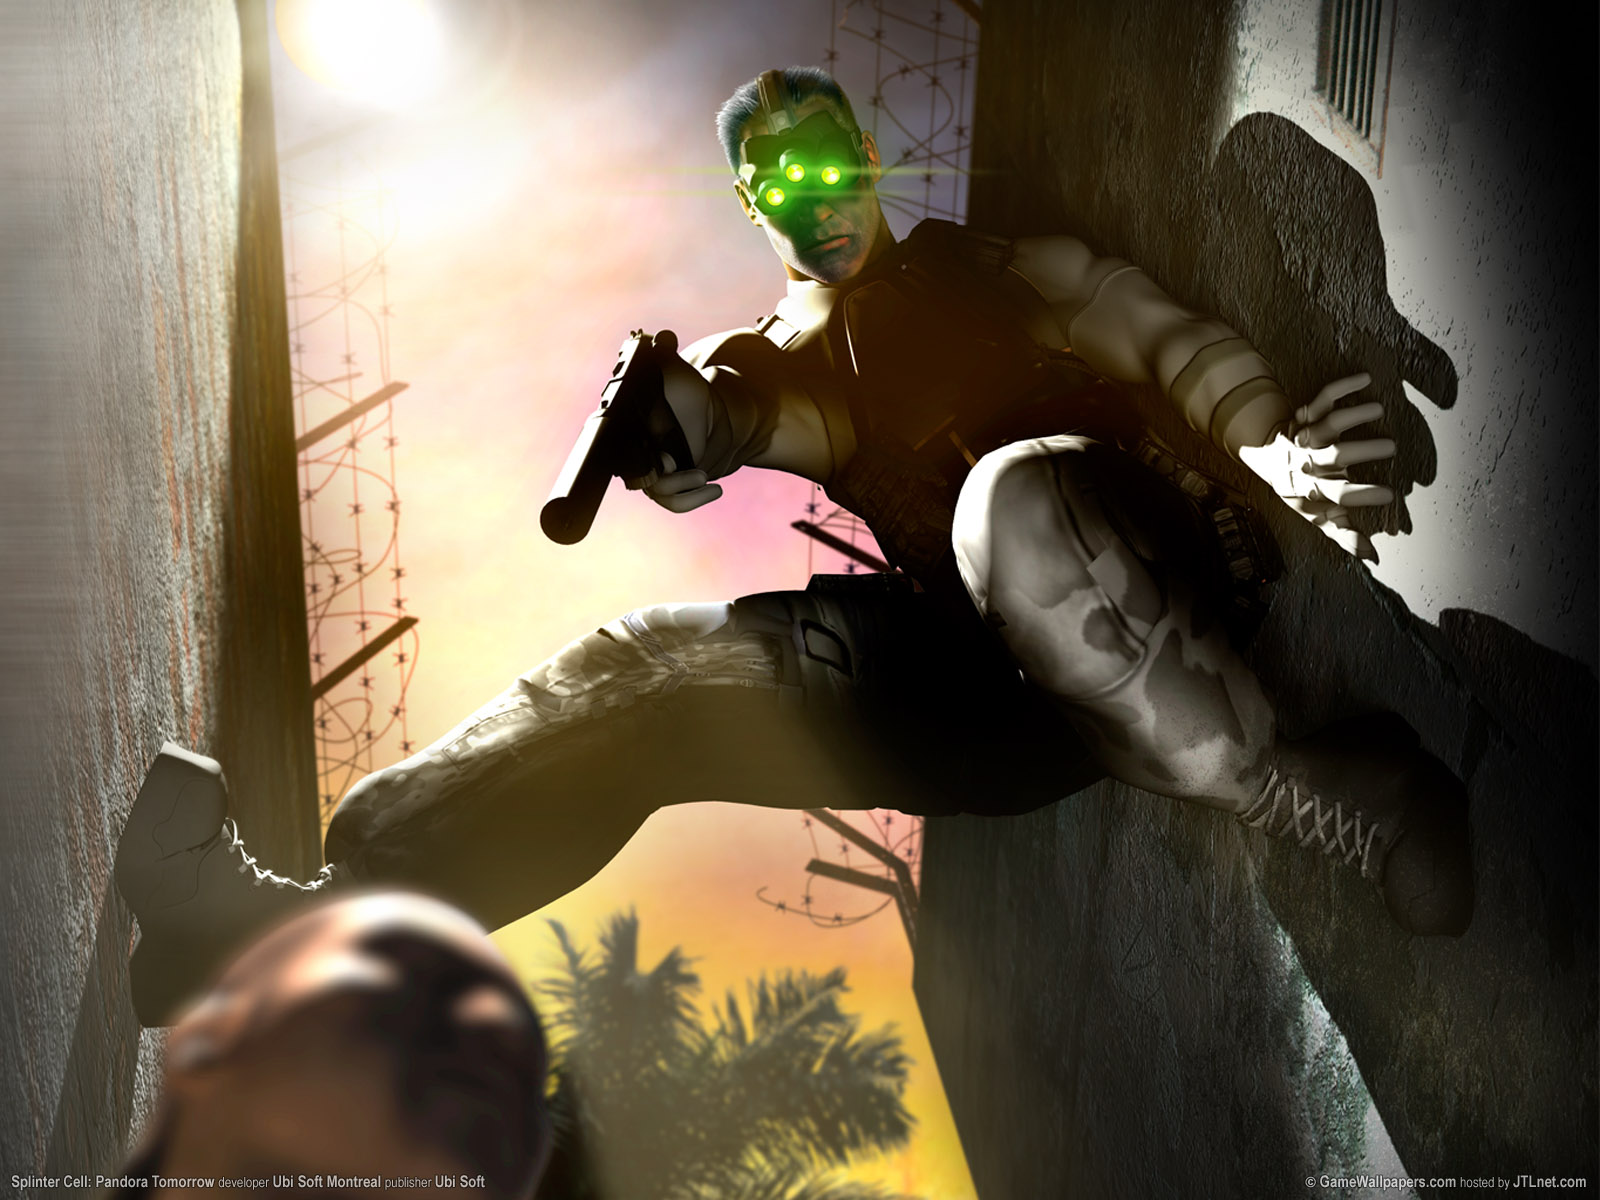 Back To The Future Iphone X Wallpaper Splinter Cell Pandora Tomorrow Wallpapers Splinter Cell